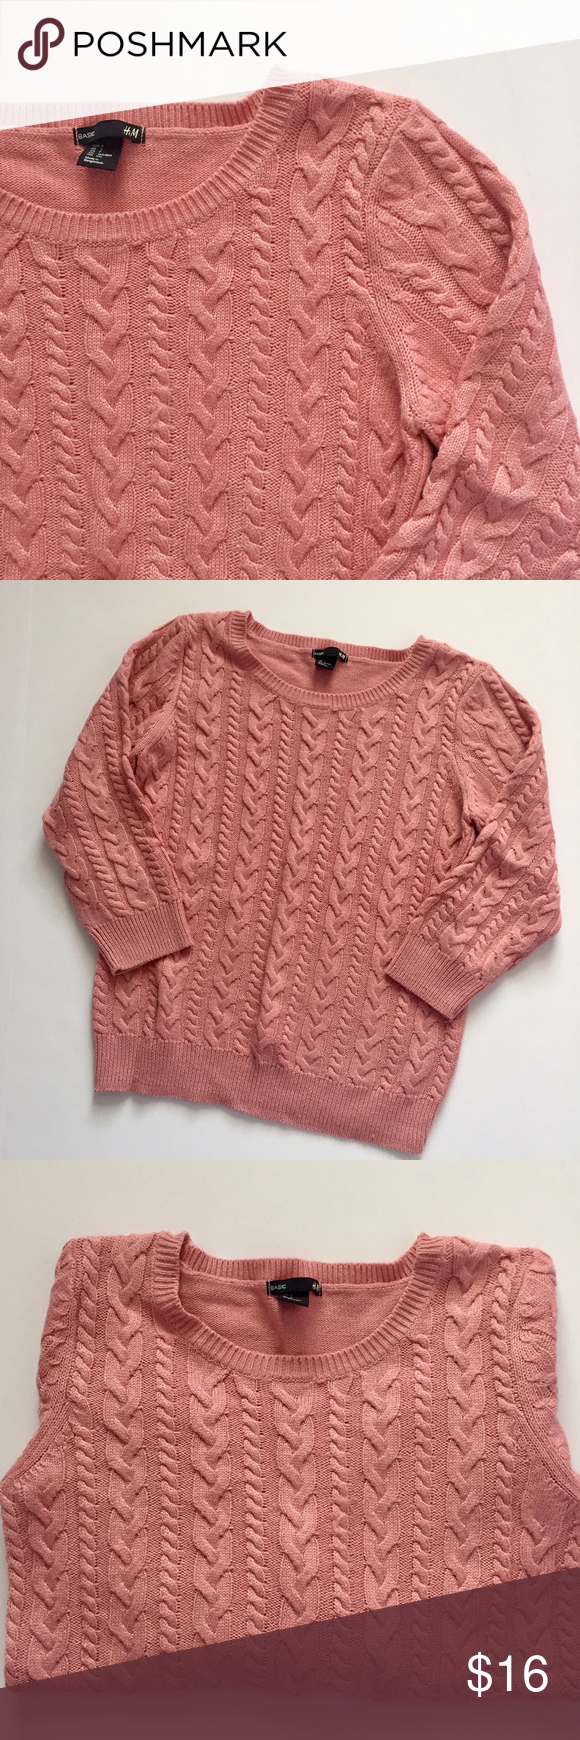 Comfy Light Pink Cable Knit Sweater ❄ | Cable knit sweaters ...